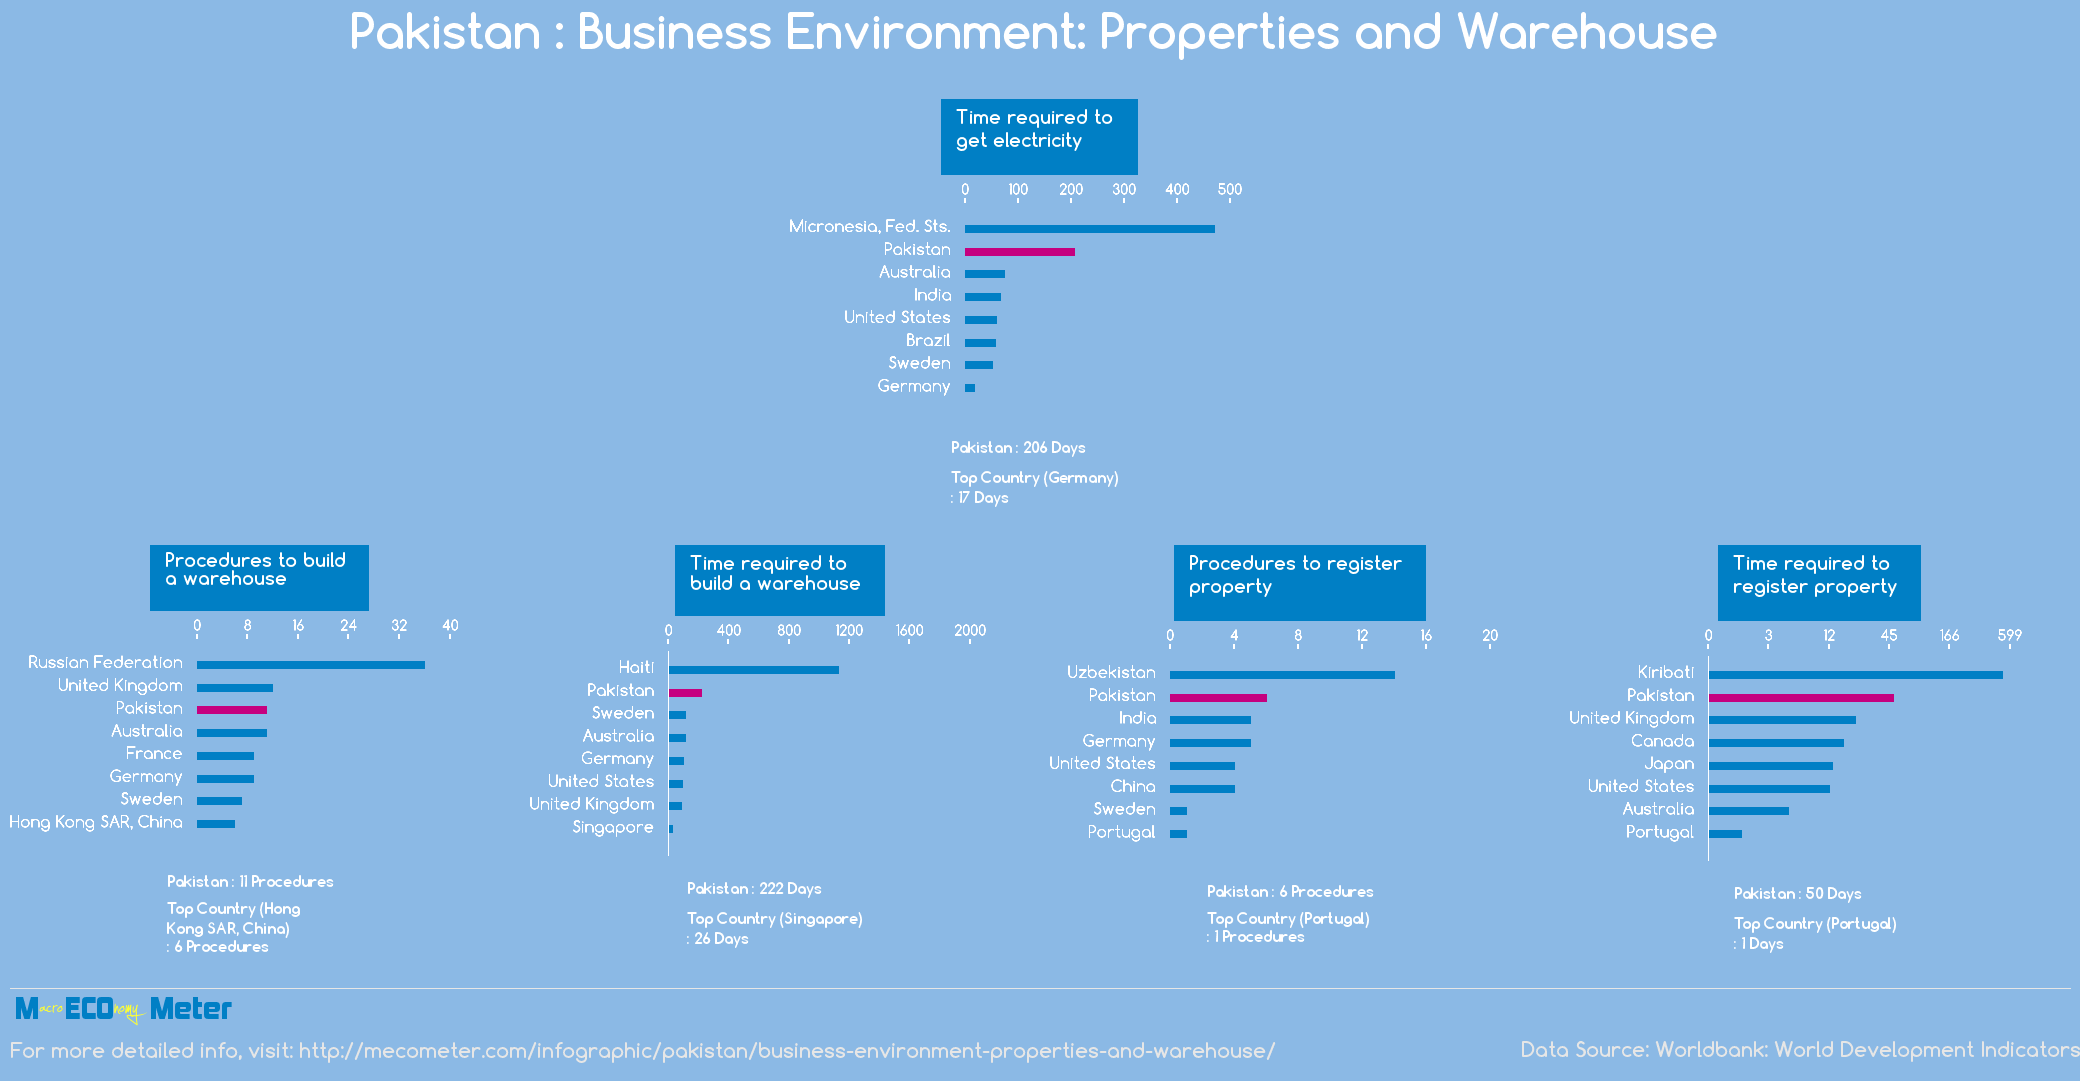 Pakistan : Business Environment: Properties and Warehouse